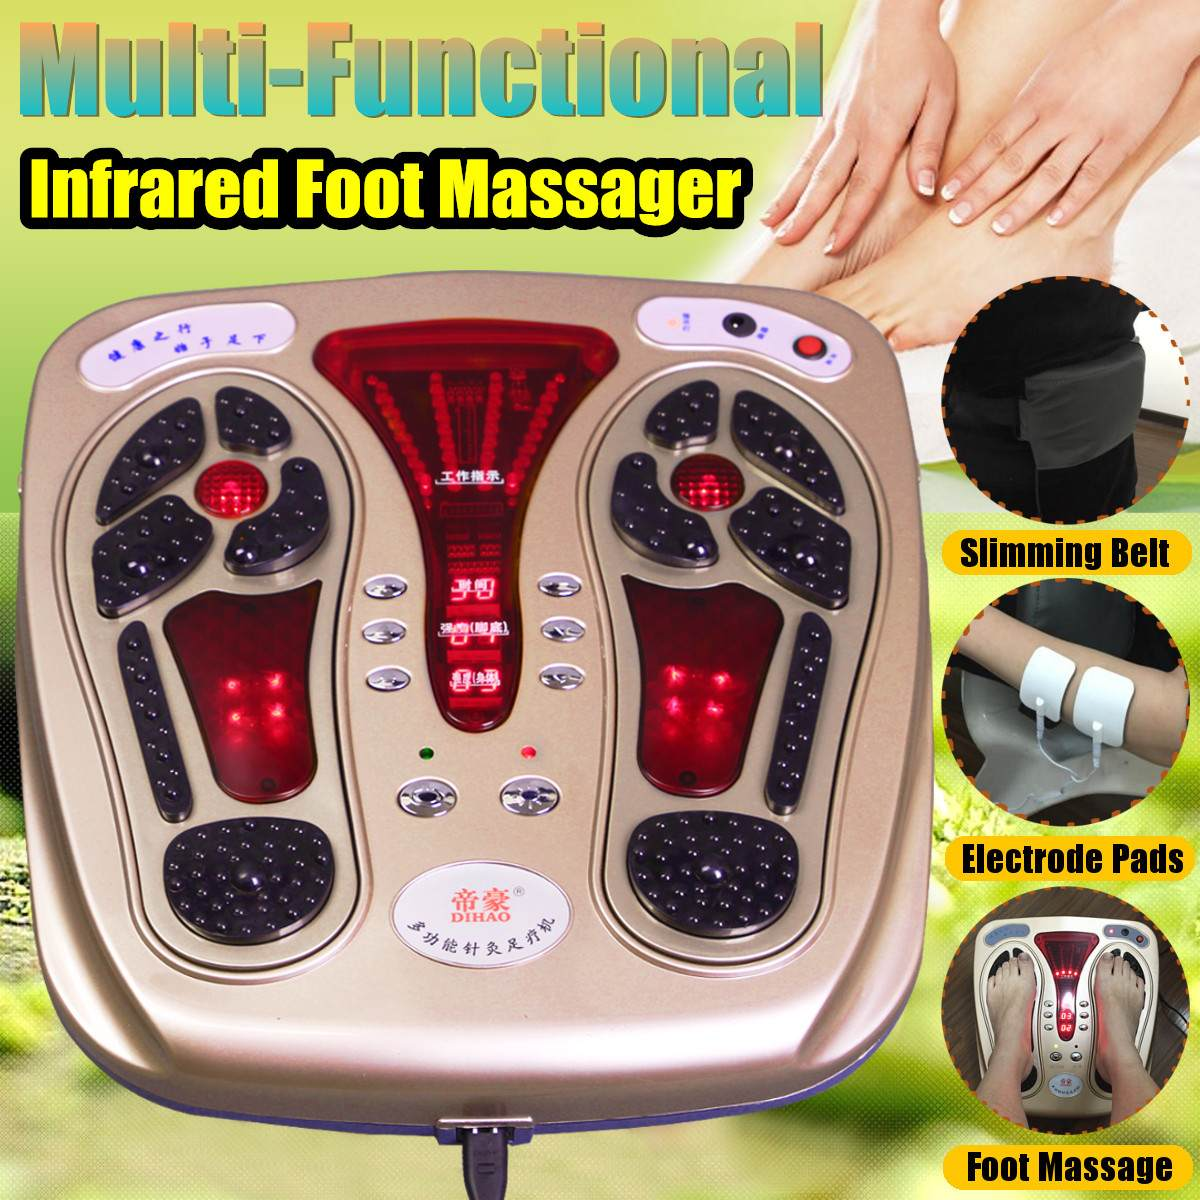 Foot Massager Machine - Electric Massage Therapy Relax Treatment Device for Calf Leg Blood Circulation and Plantar Fasciitis